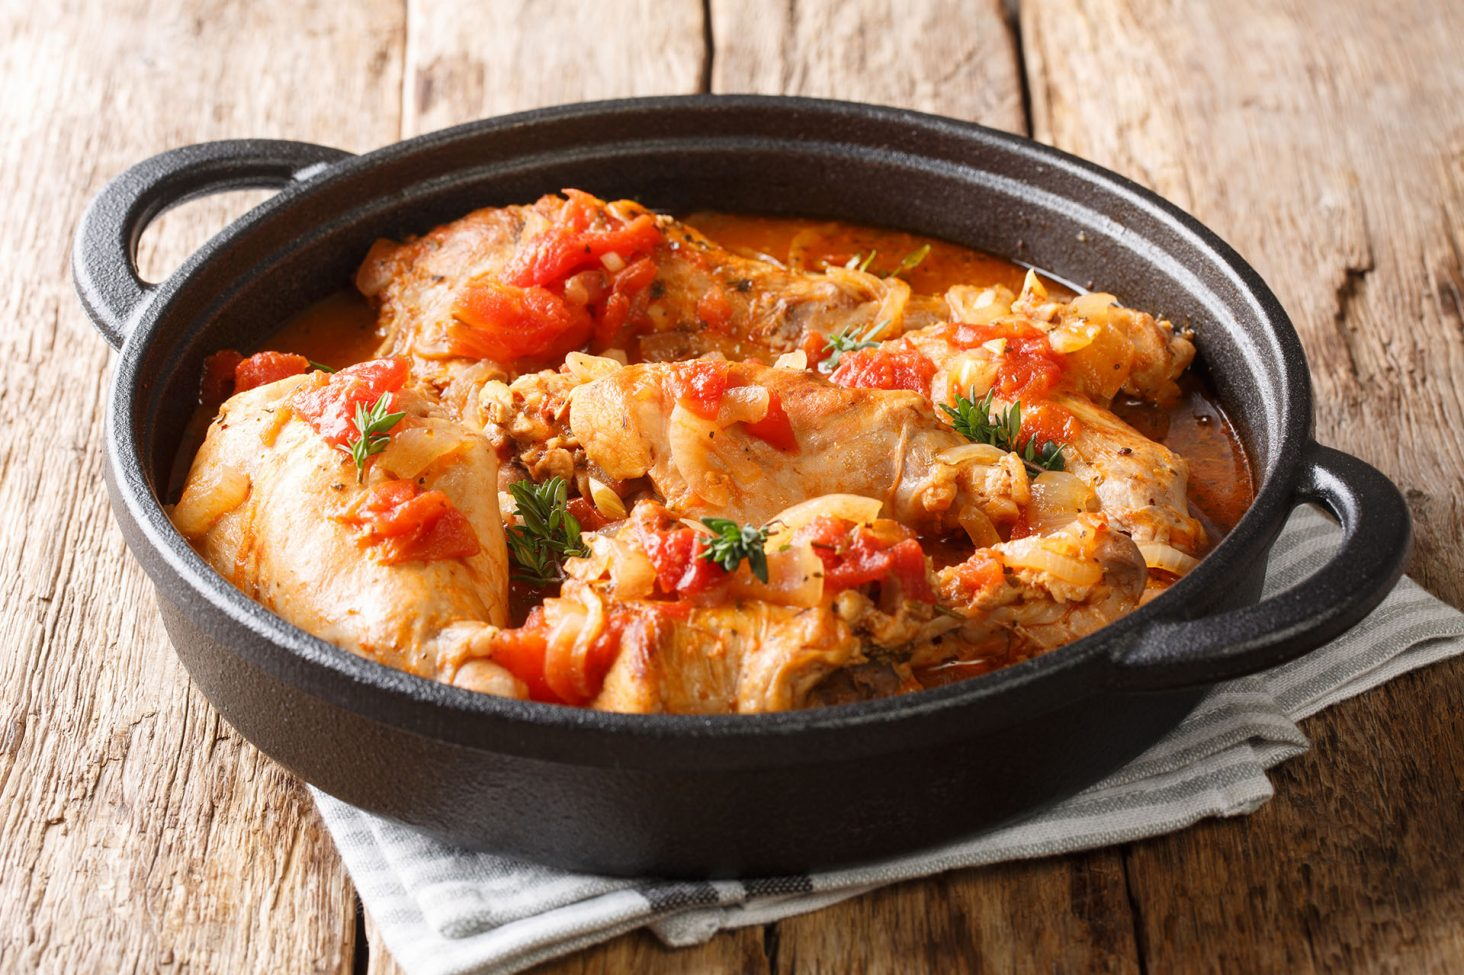 Tasty spicy rabbit stew in tomato sauce with white wine and herb